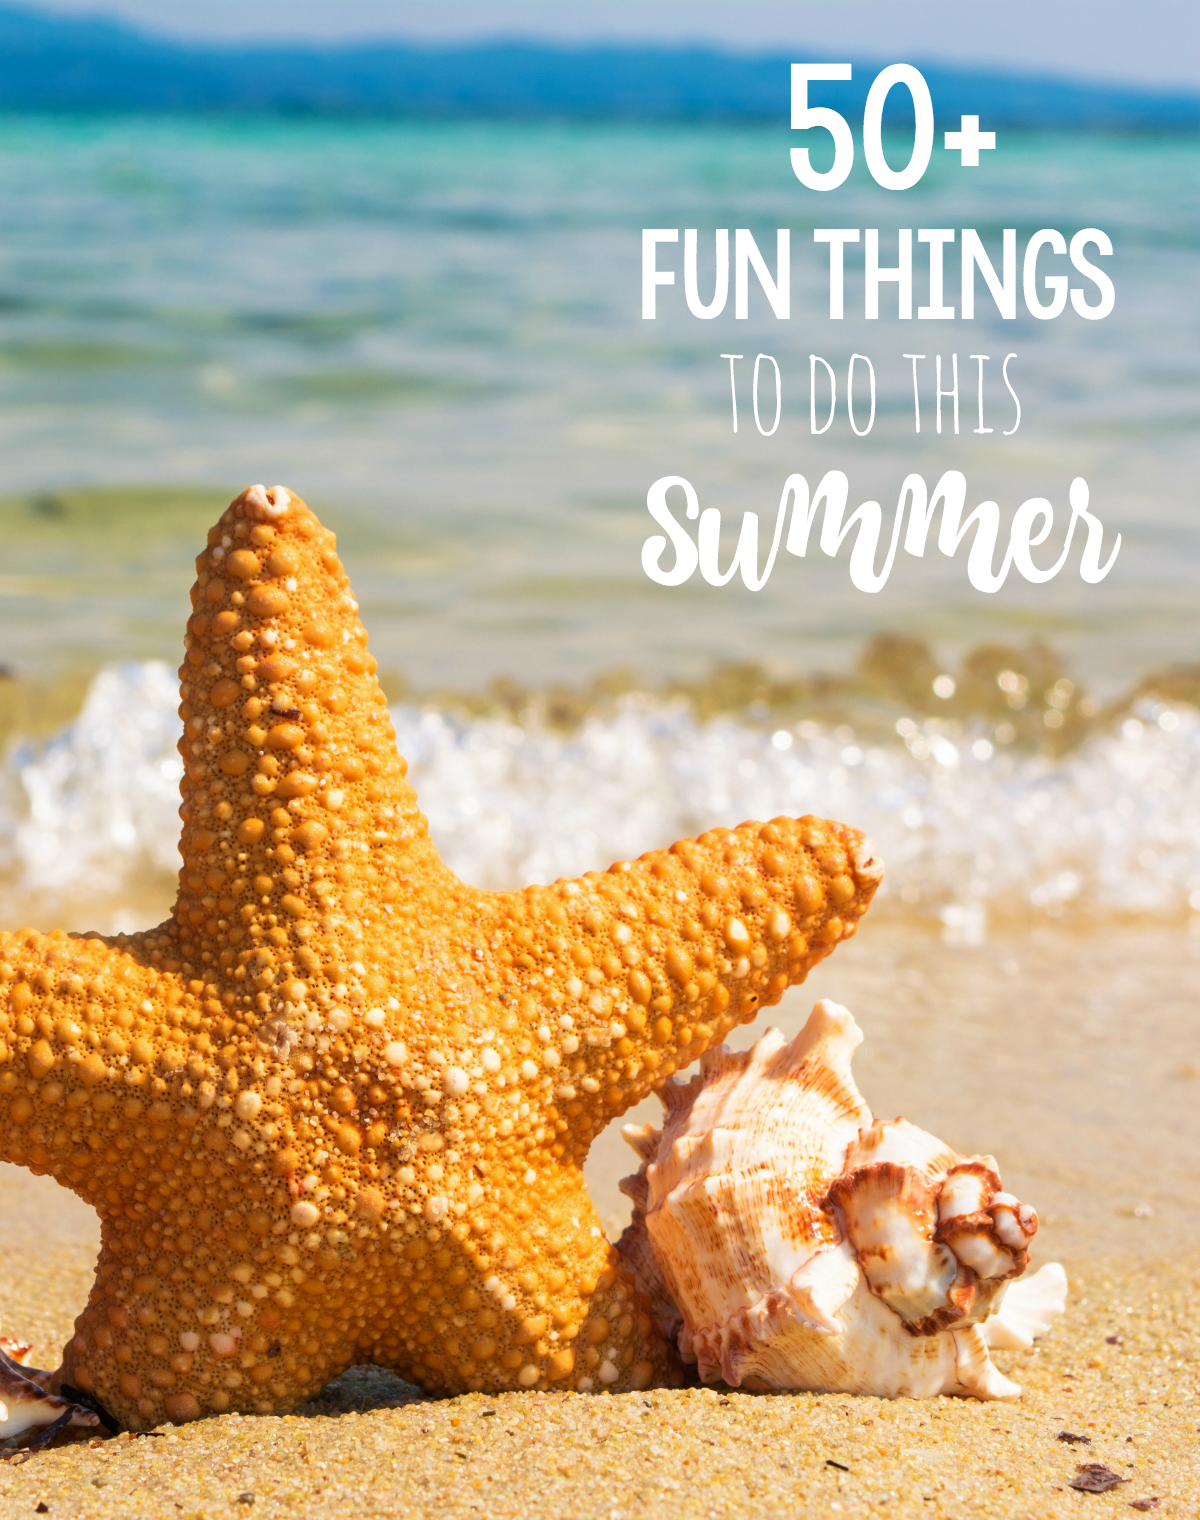 Fun Summer Activities for Kids-Try these 50+ Bucket List Ideas with Your Kids This Summer! All kinds of great ideas for summer fun! #summer #kids #summerfun #summeractivities #kidsactivities #summerfunforkids